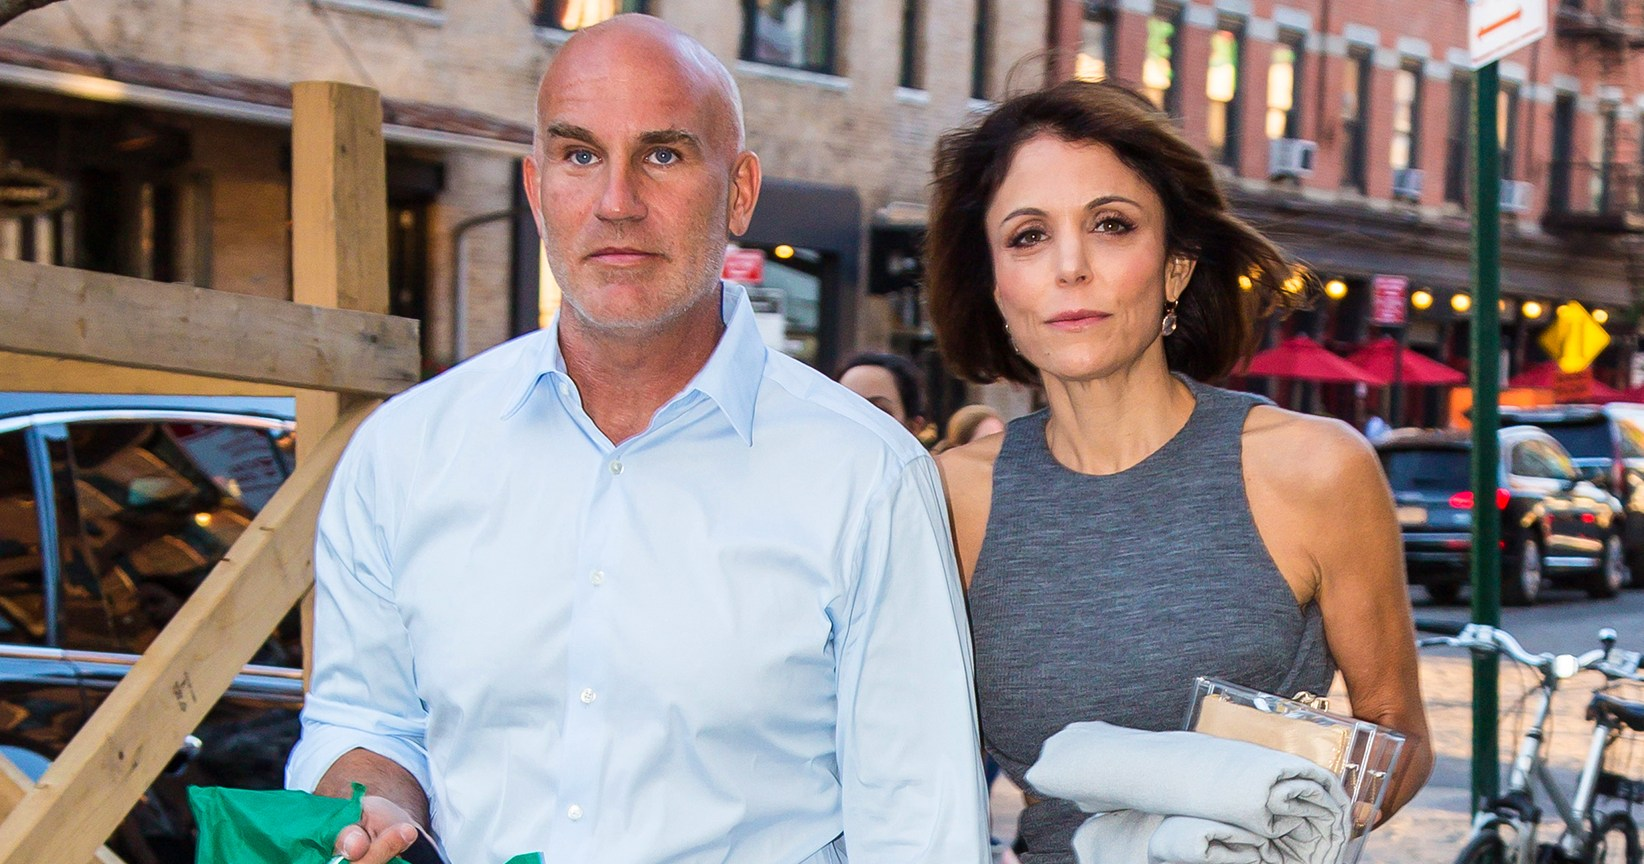 Bethenny's On-Again, Off-Again Boyfriend Dennis Found Dead